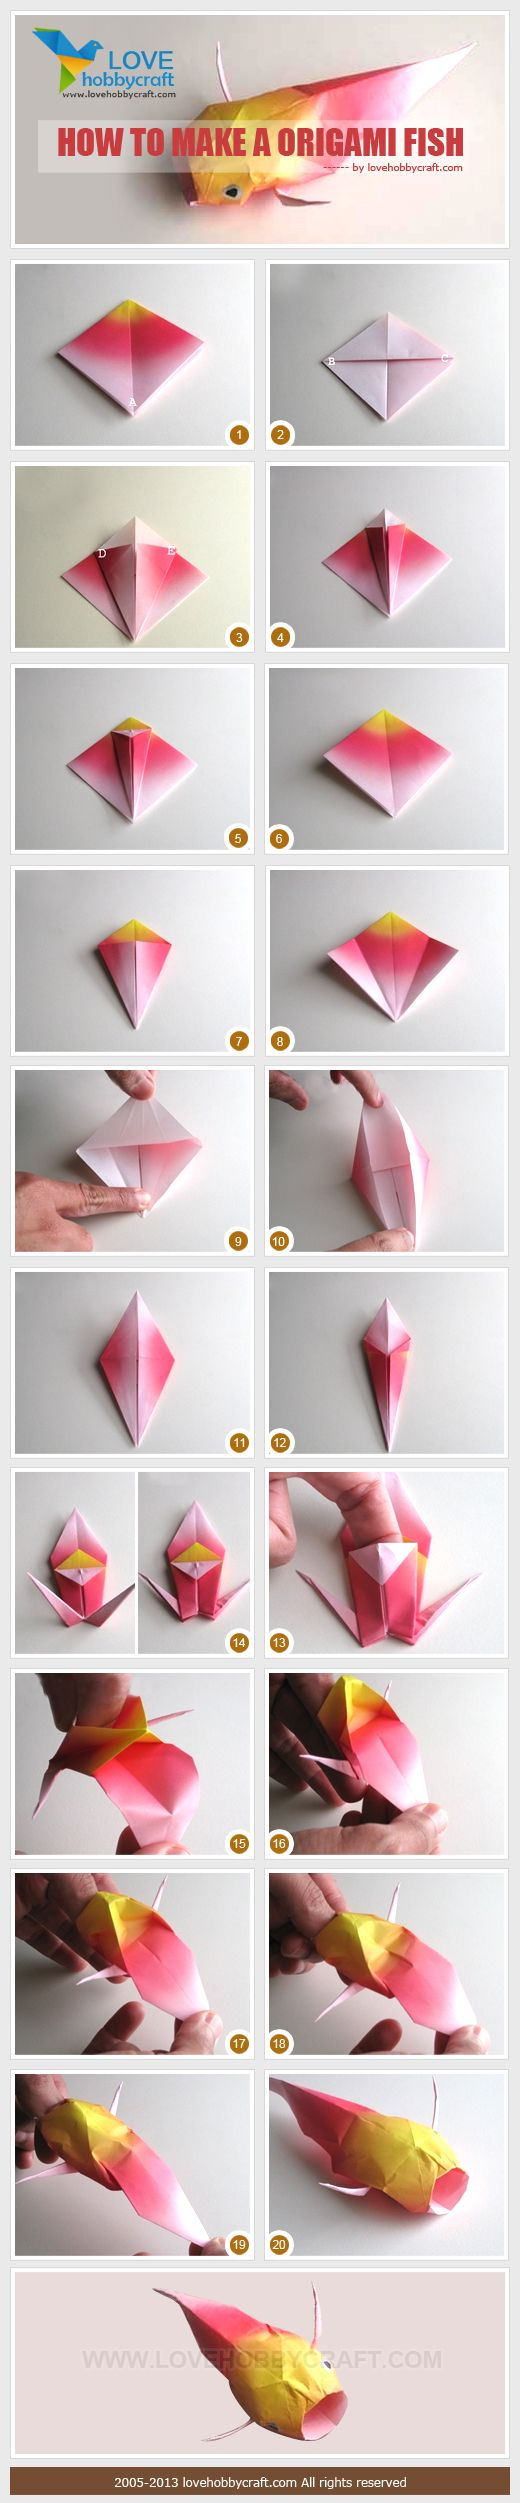 the 25 best ideas about origami fish on pinterest